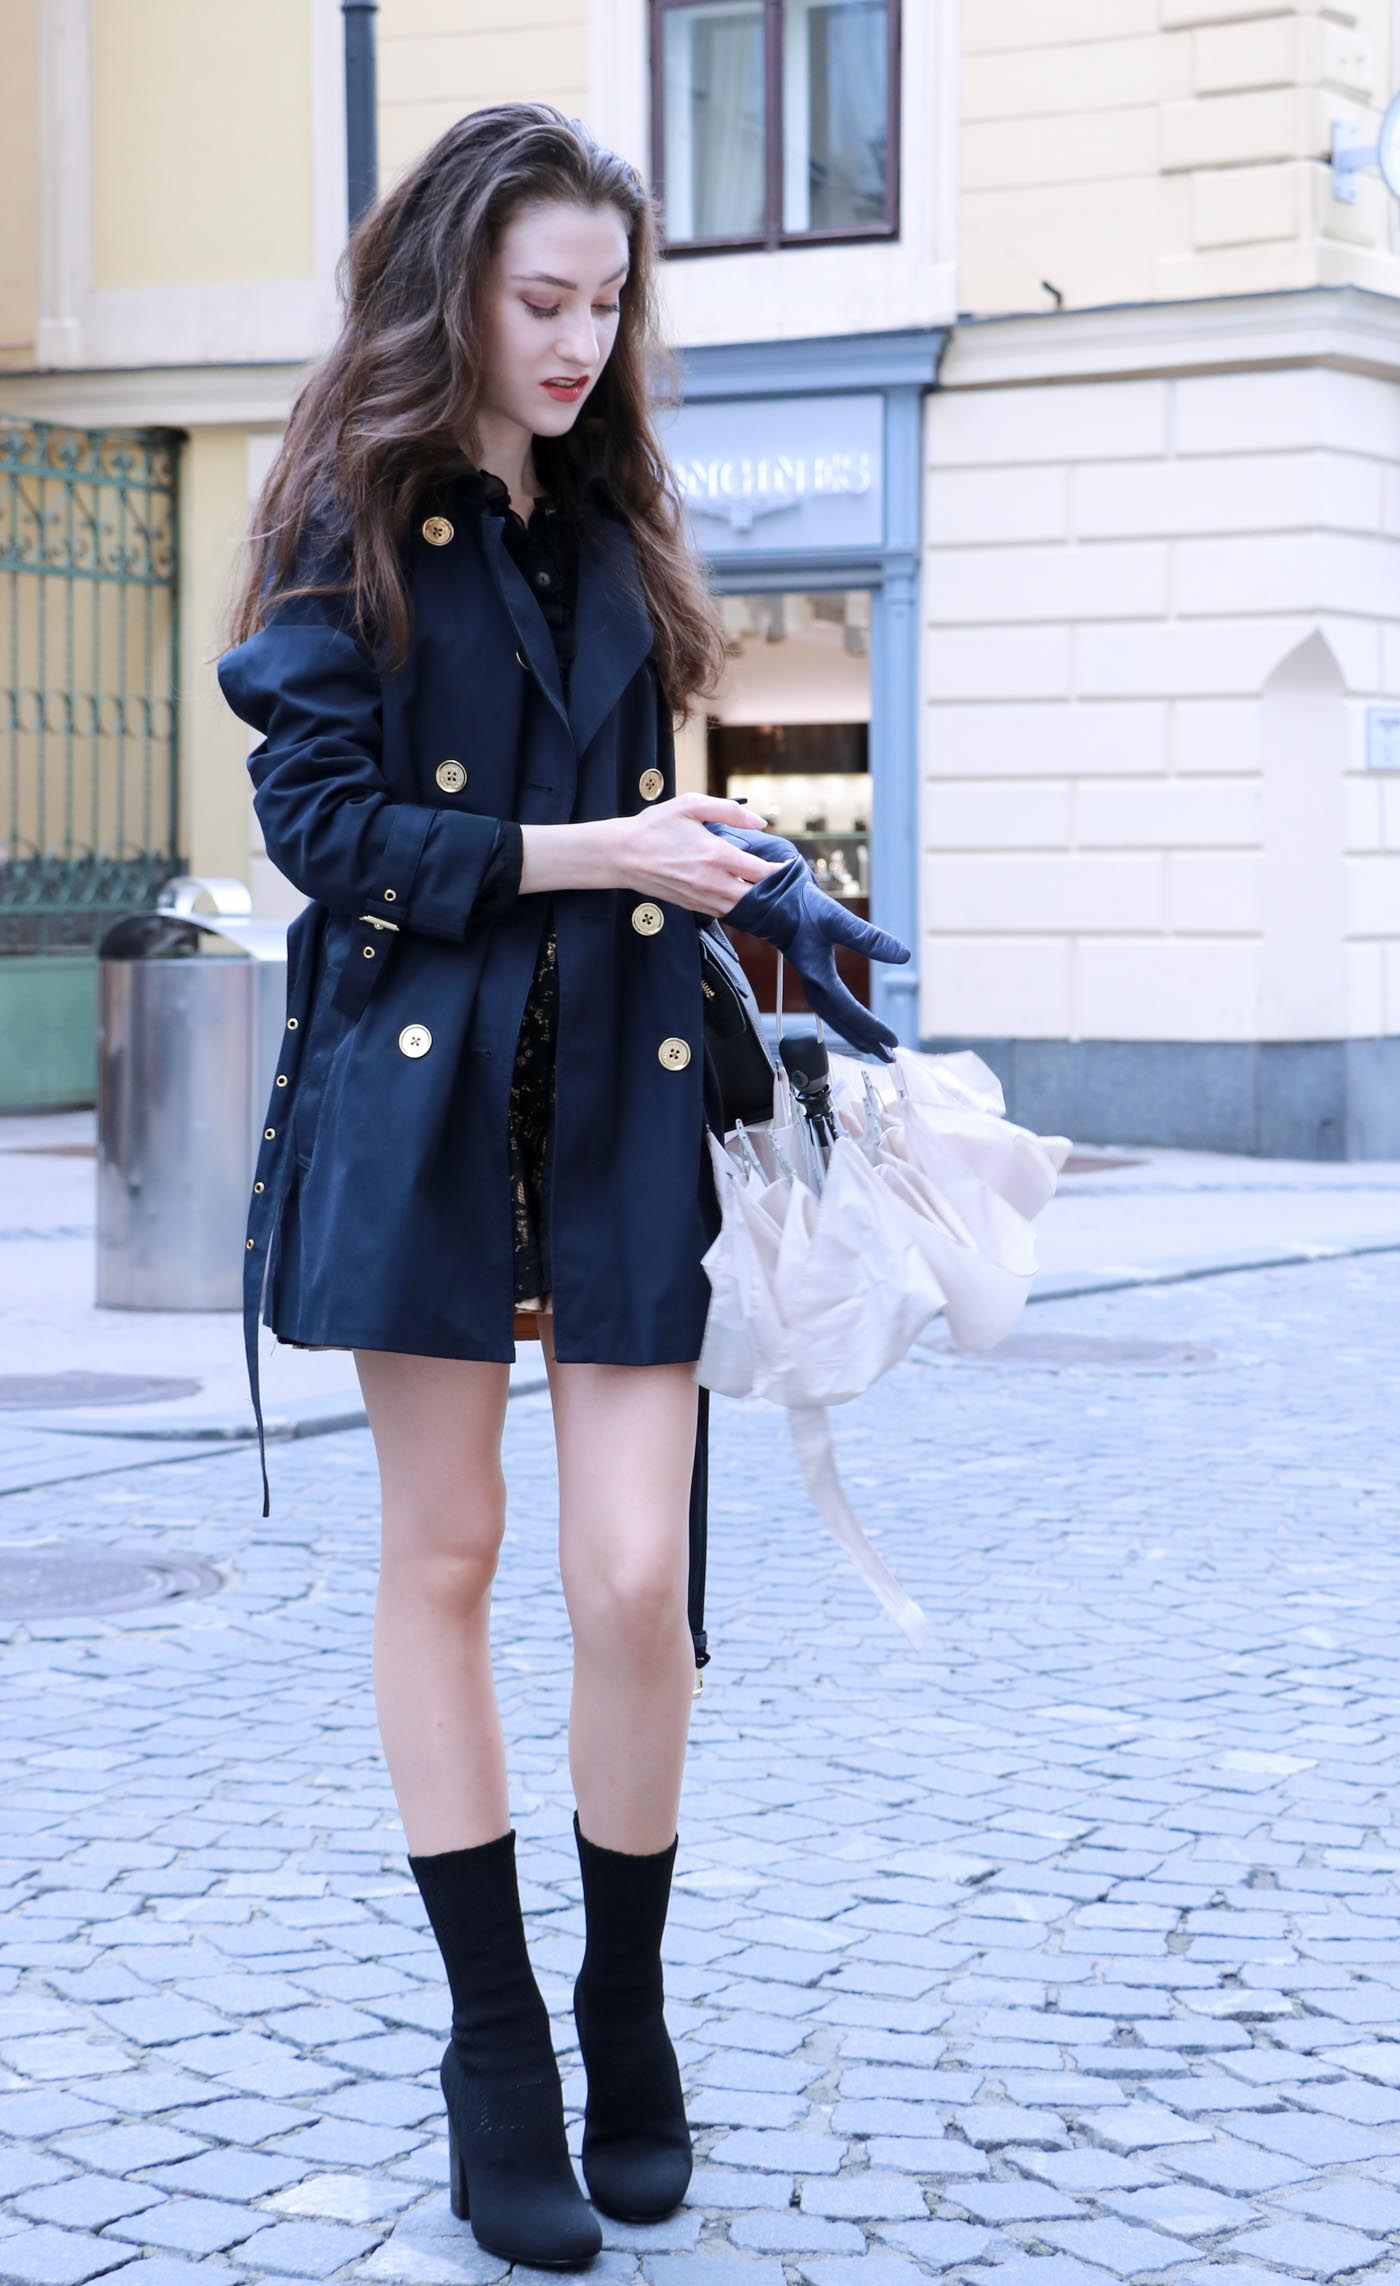 Fashion Blogger Veronika Lipar of Brunette from Wall Street dressed in blue trench coat and ankle booties on a rainy day